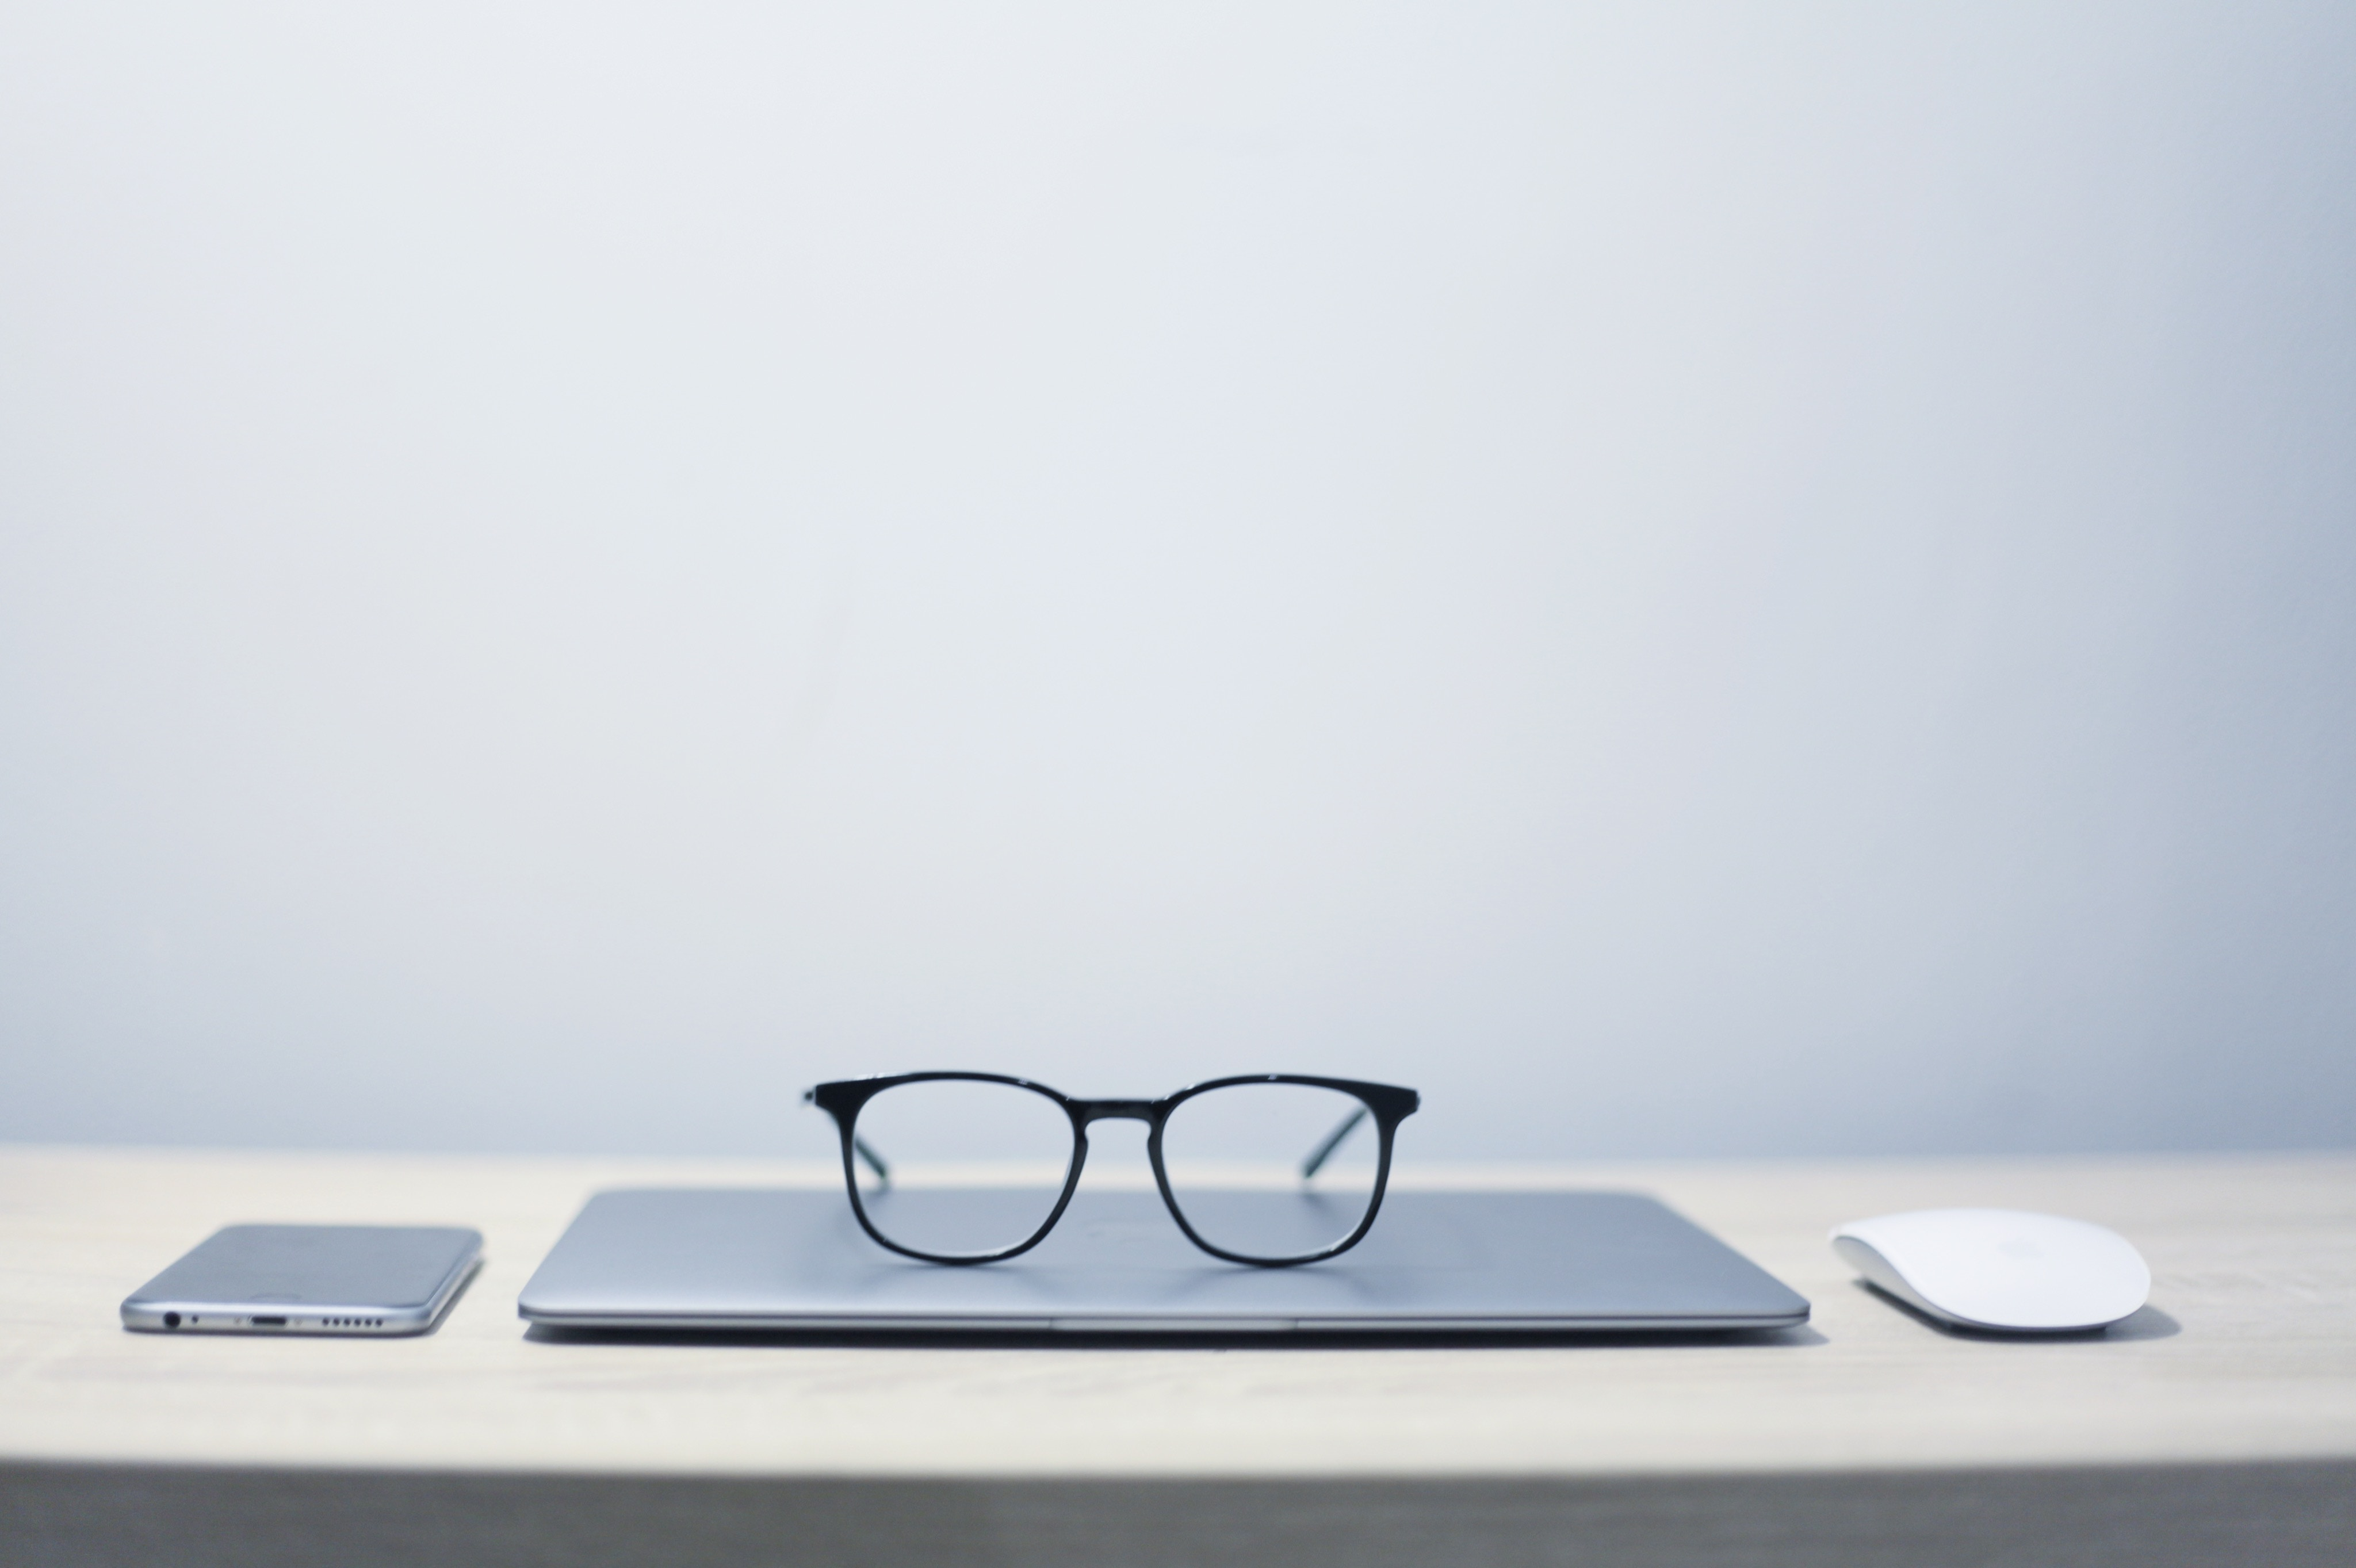 Image of close laptop with pair of glasses on top